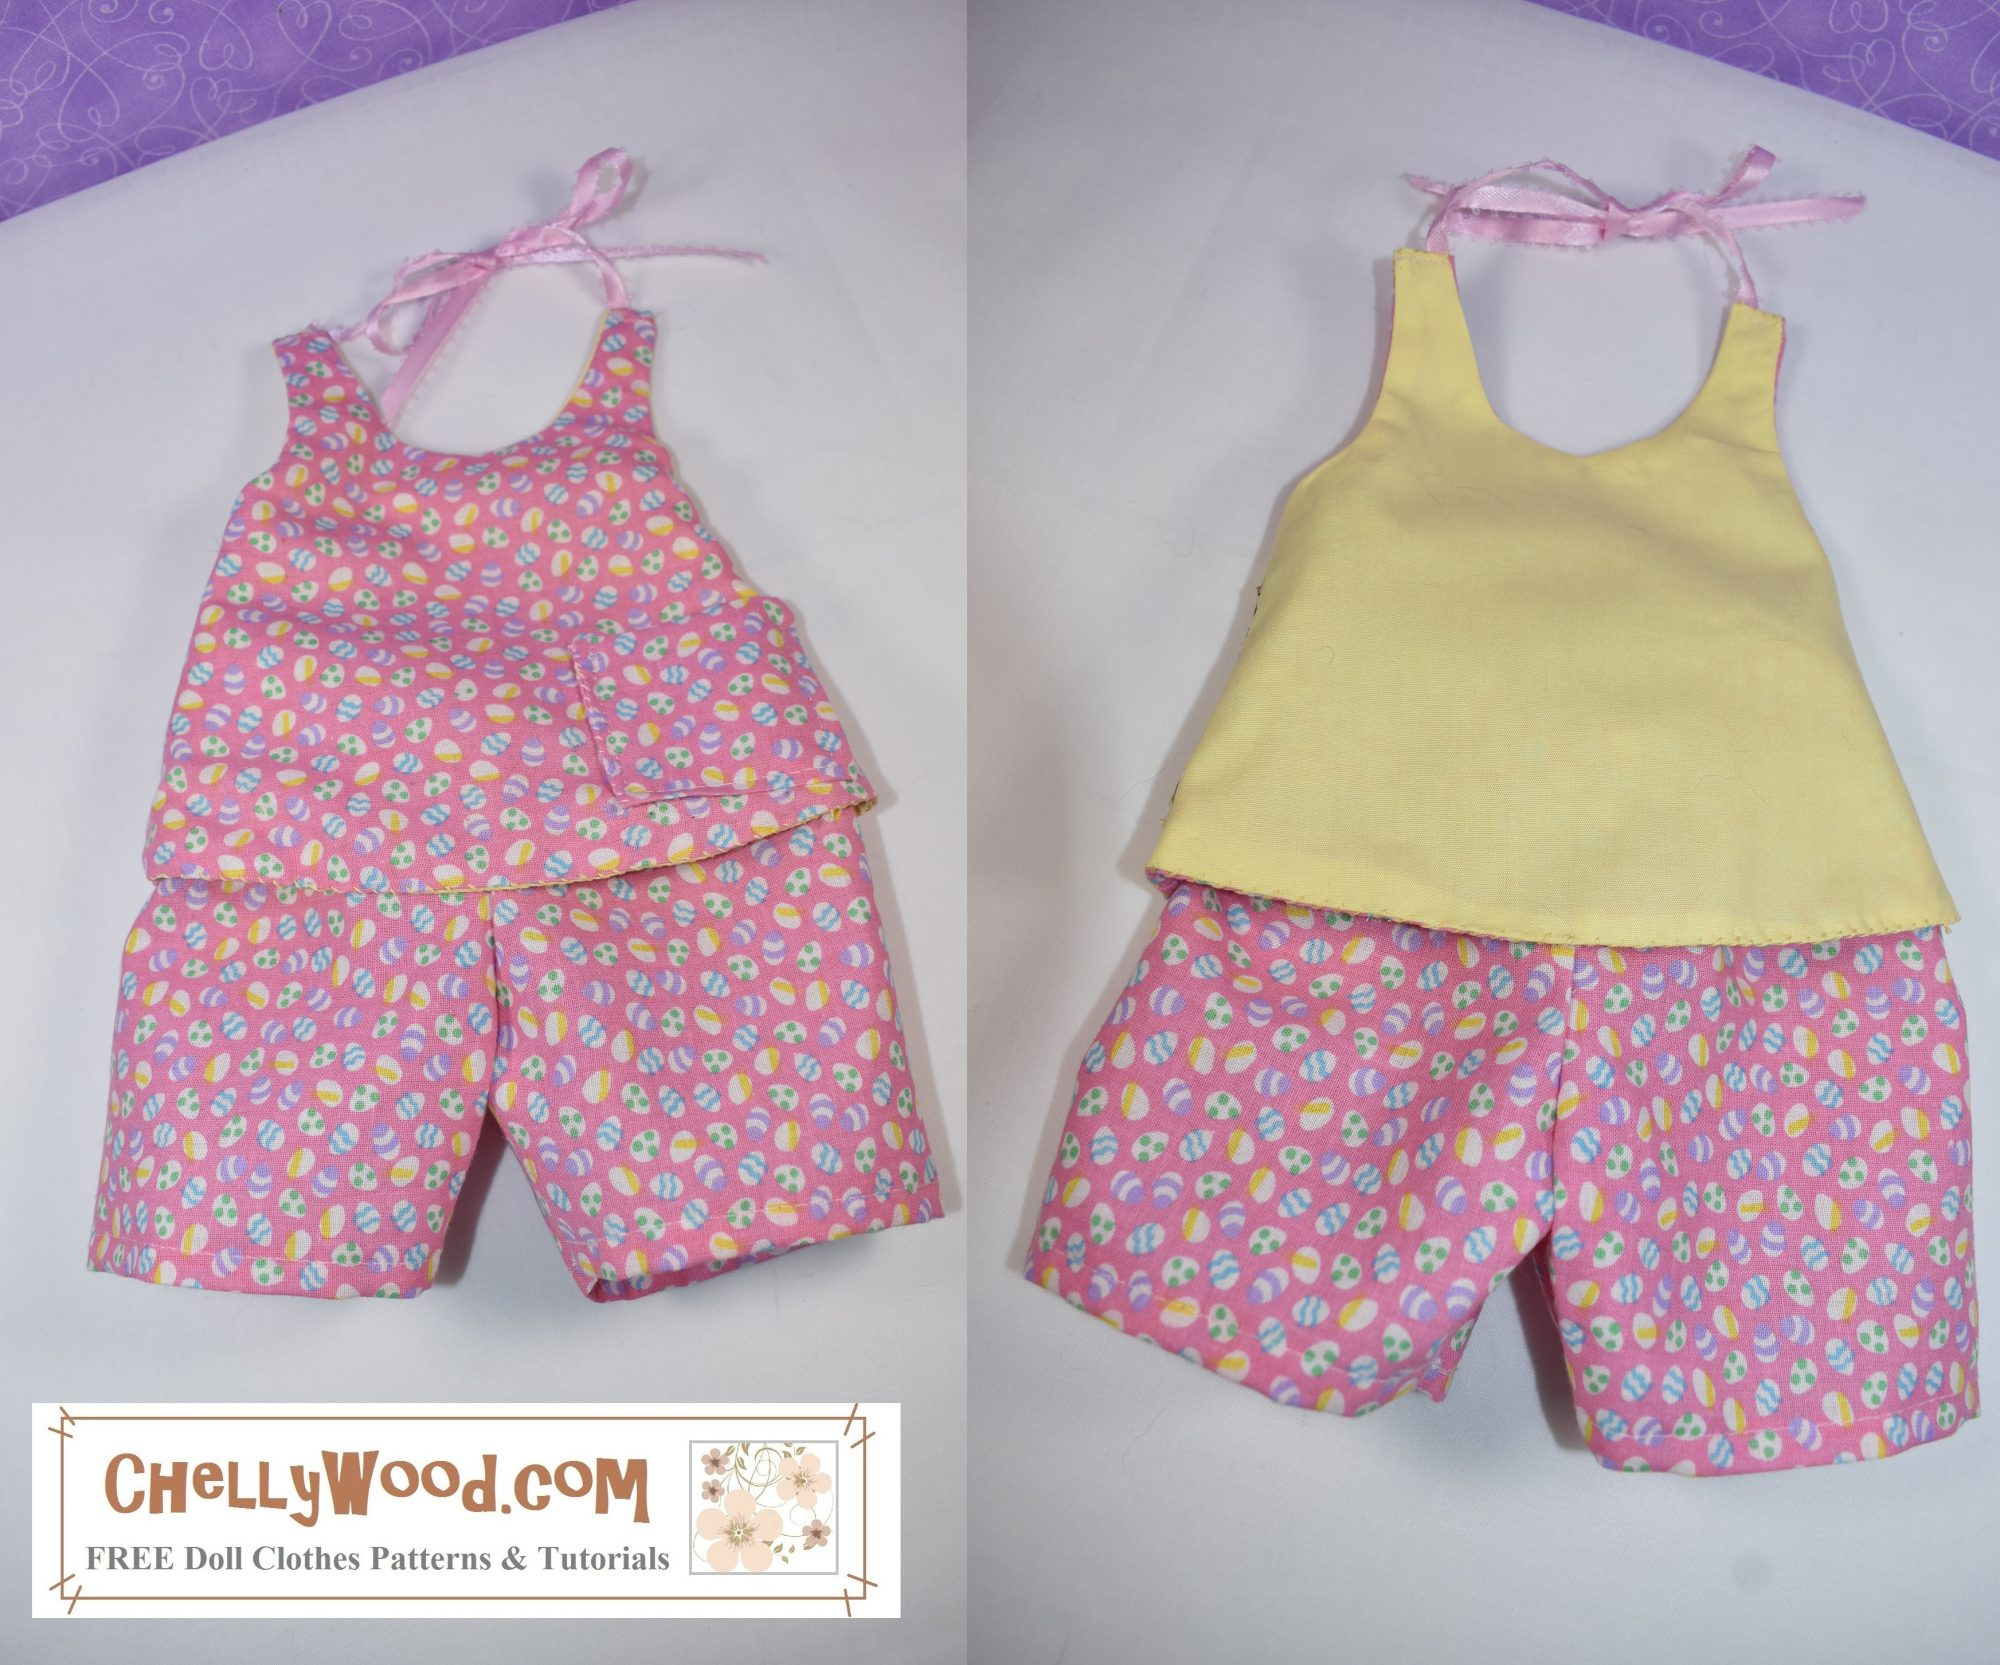 The image shows a reversible halter top and shorts. This outfit is super versatile and will fit a large variety of dolls in the following sizes: 12 inch (baby dolls) 13 inch (baby dolls and some chubby toddler sized dolls), 14 inch, 15 inch, 16 inch, 17 inch, and 18 inch dolls can all fit into this outfit! See images on the page (link provided in the caption) to see all the different dolls that can fit in this outfit. If you're looking for a really versatile doll clothes pattern that will fit almost any doll, this is the one I recommend every time!